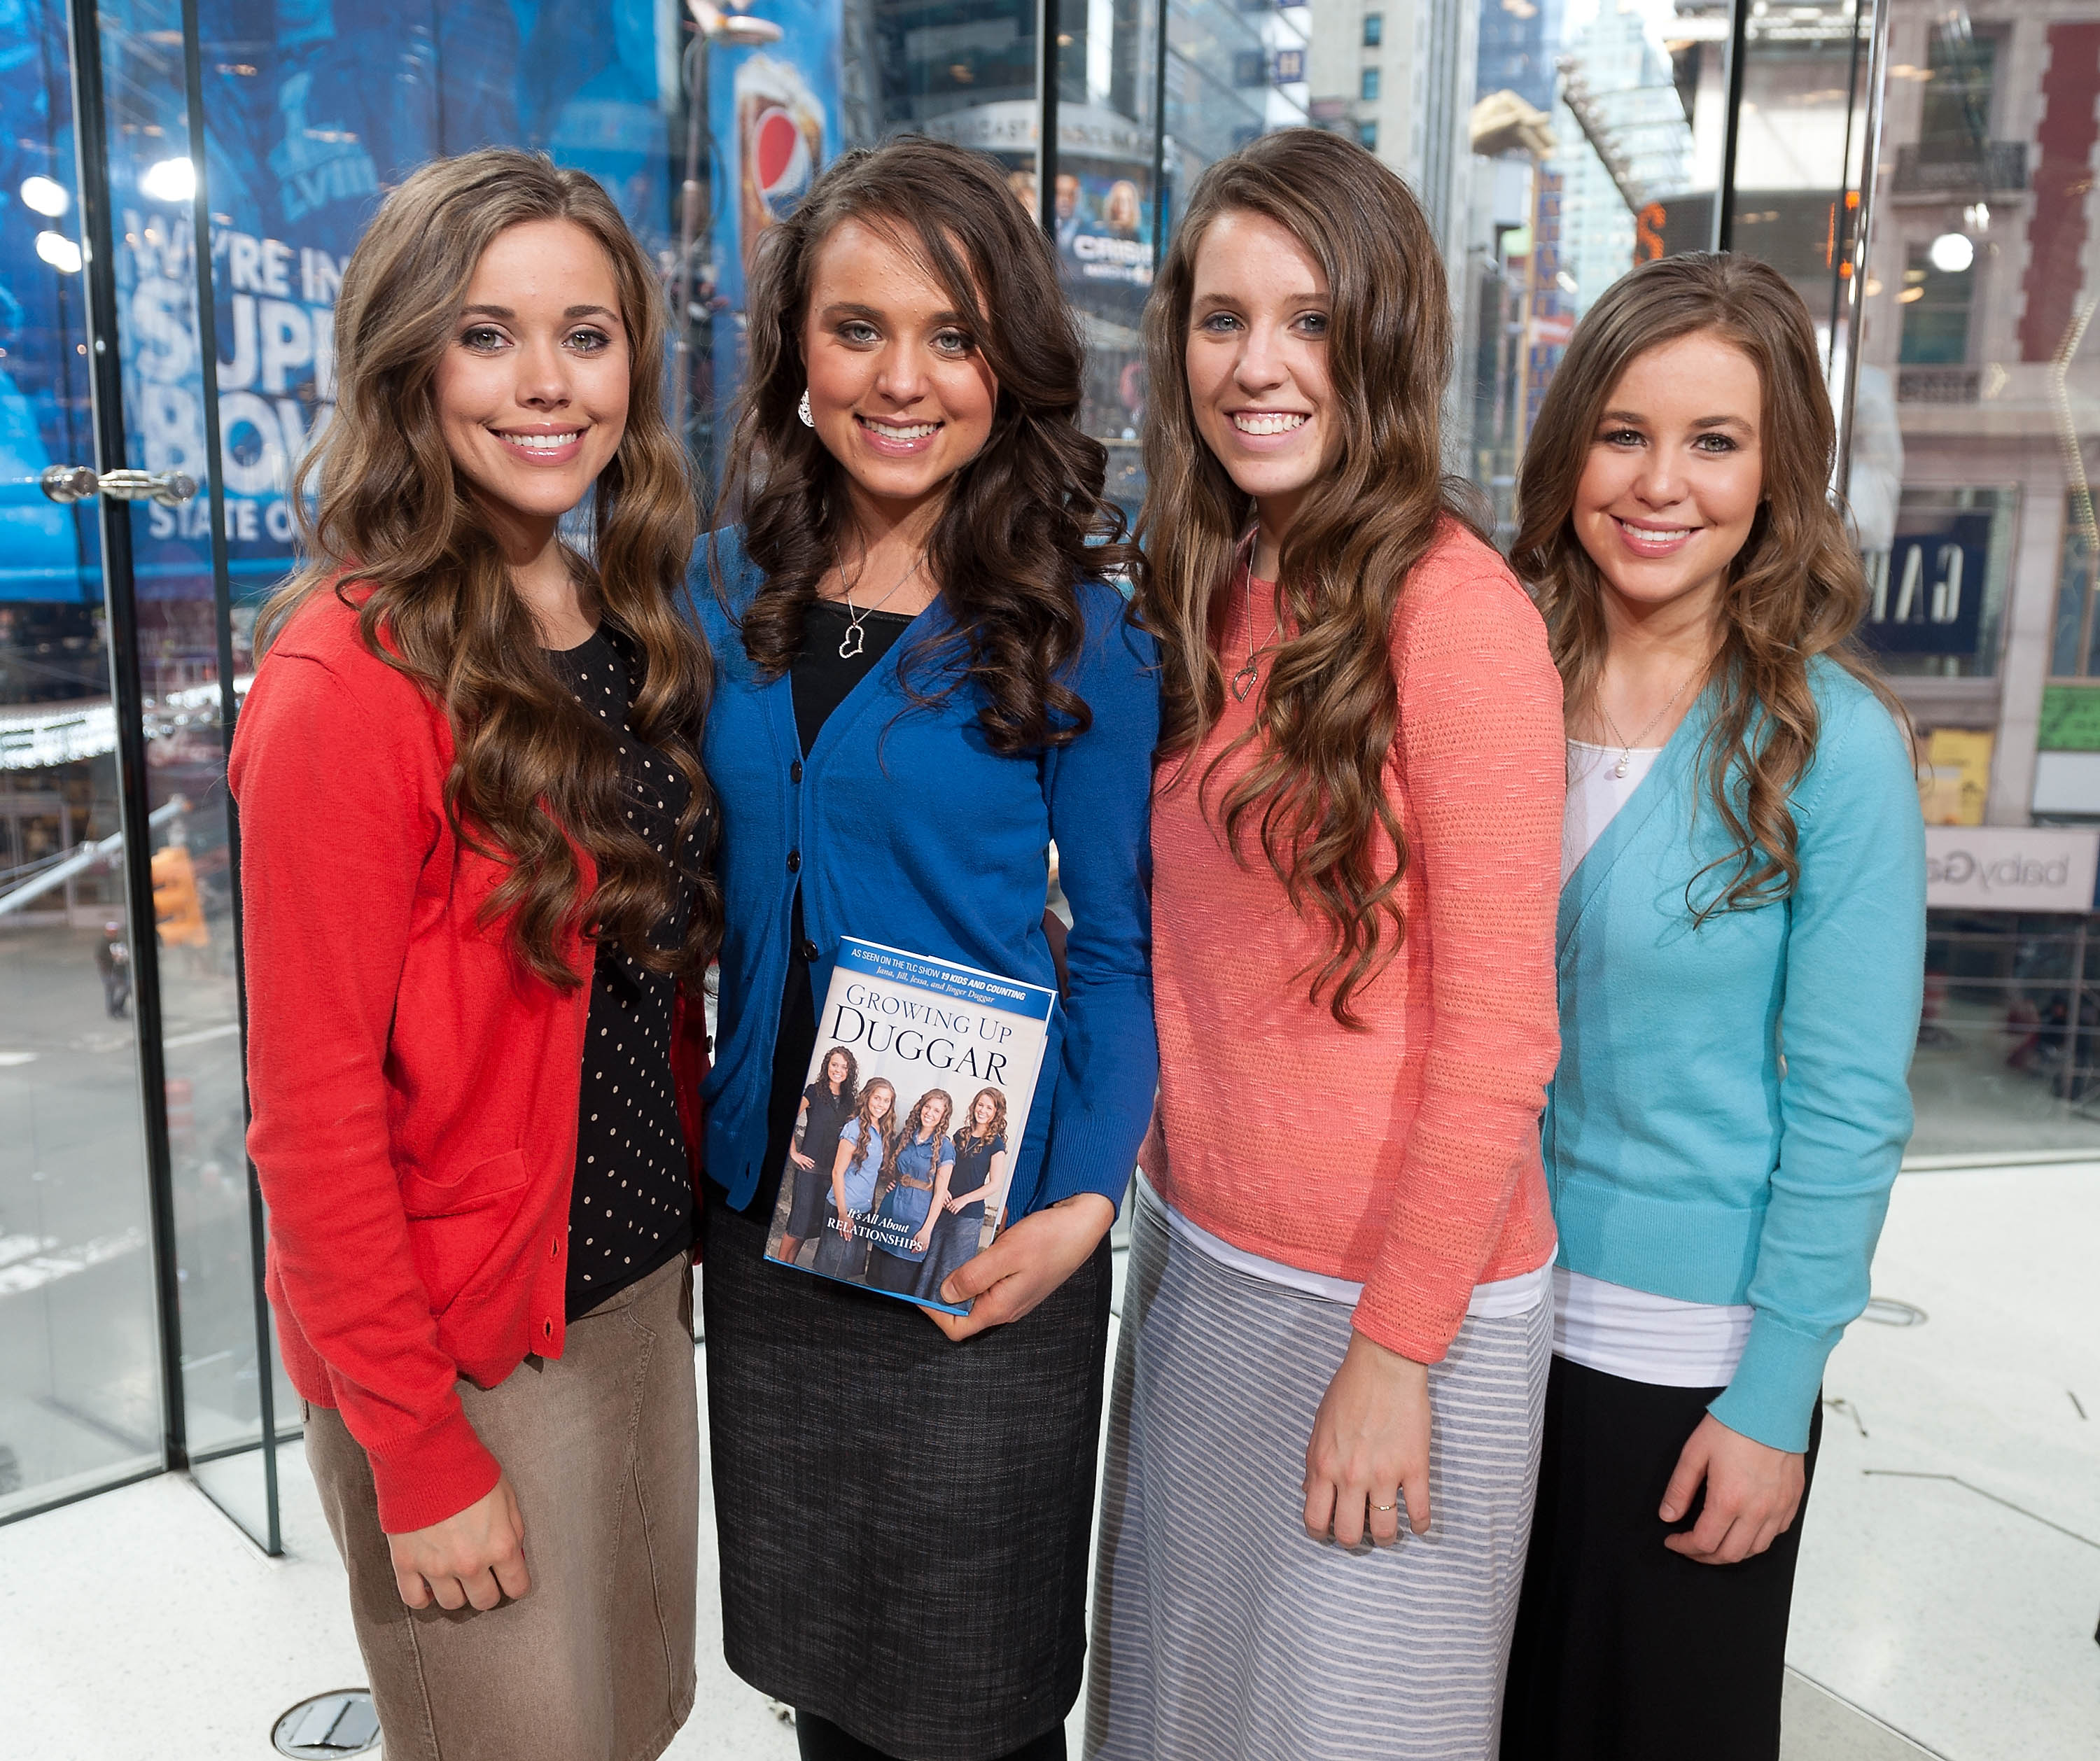 """Jana Duggar is picture of the far right as the sisters promote their new book, """"Growing Up Duggar"""" 